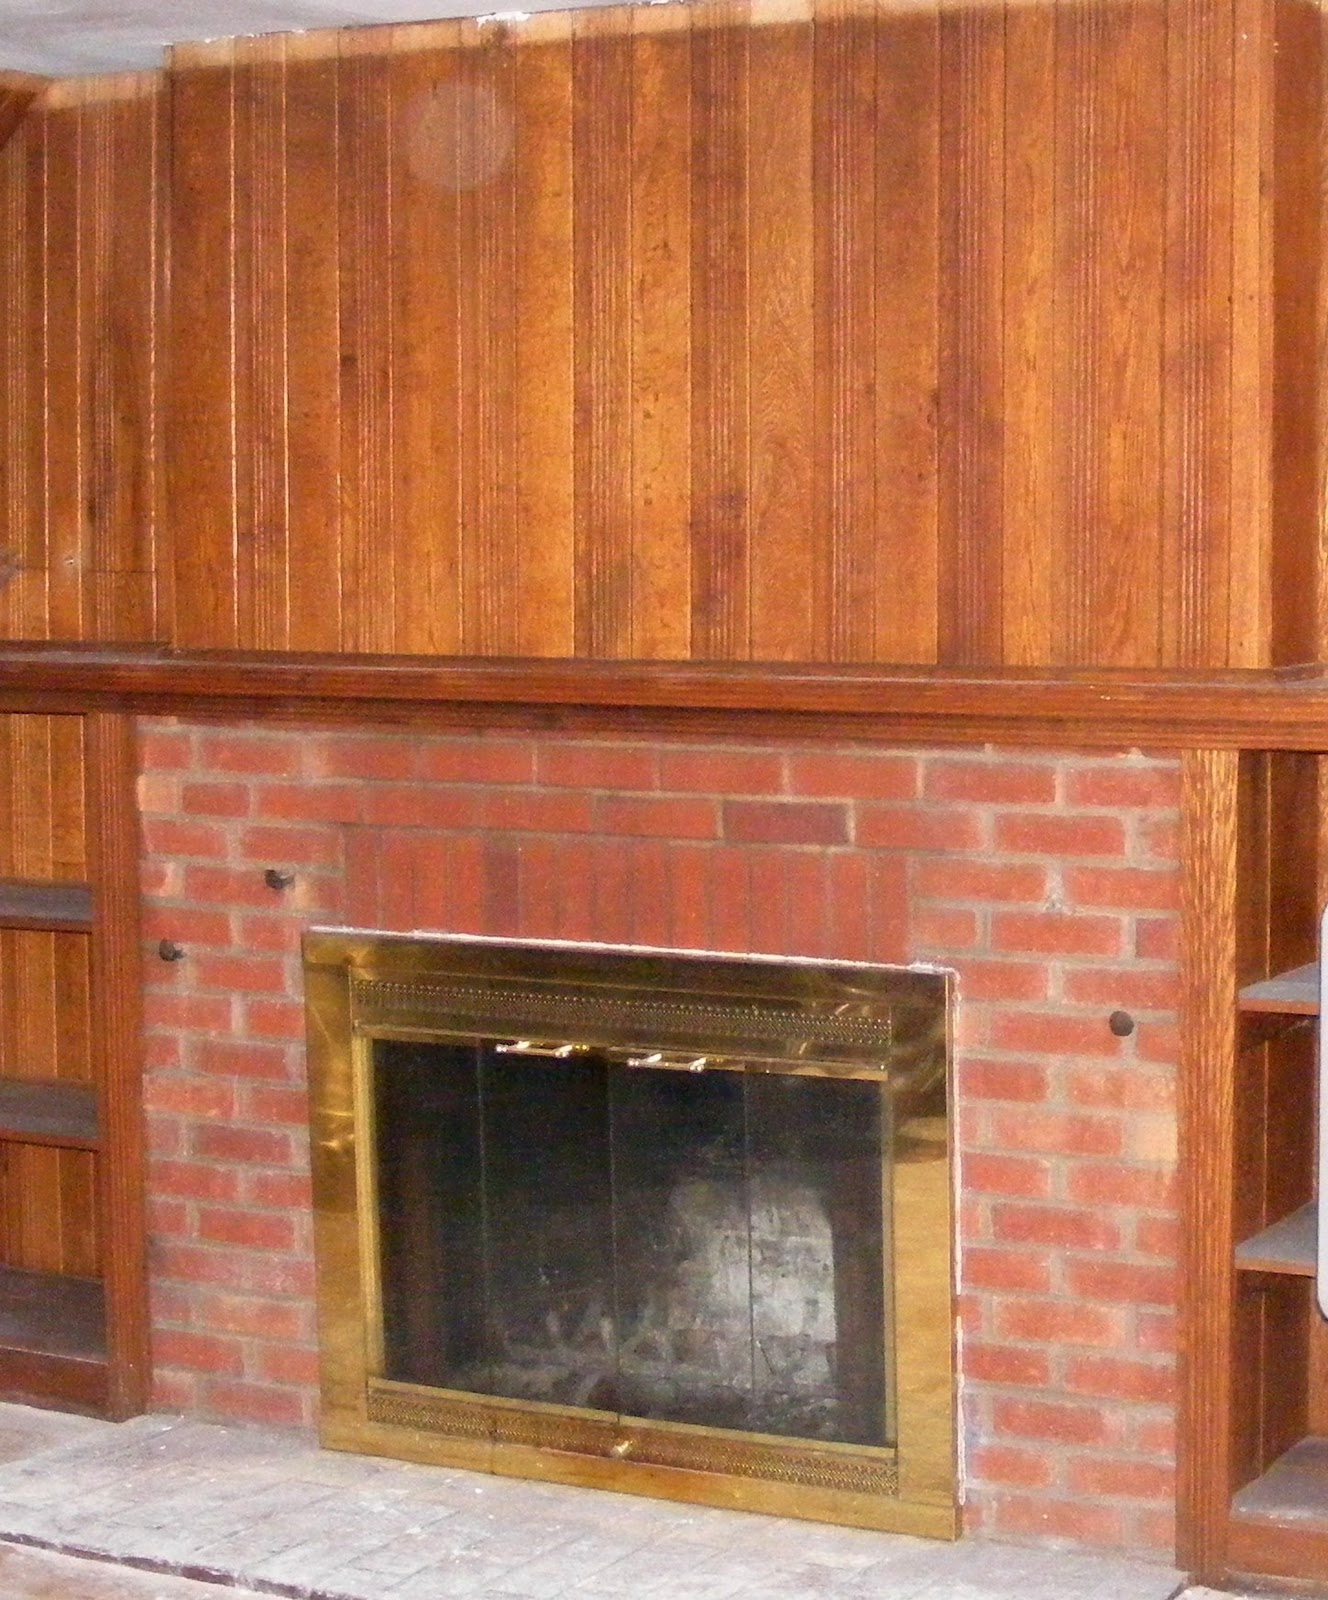 Cover Brick Fireplace With Wood Panels Greensboro Interior Design Window Treatments Greensboro